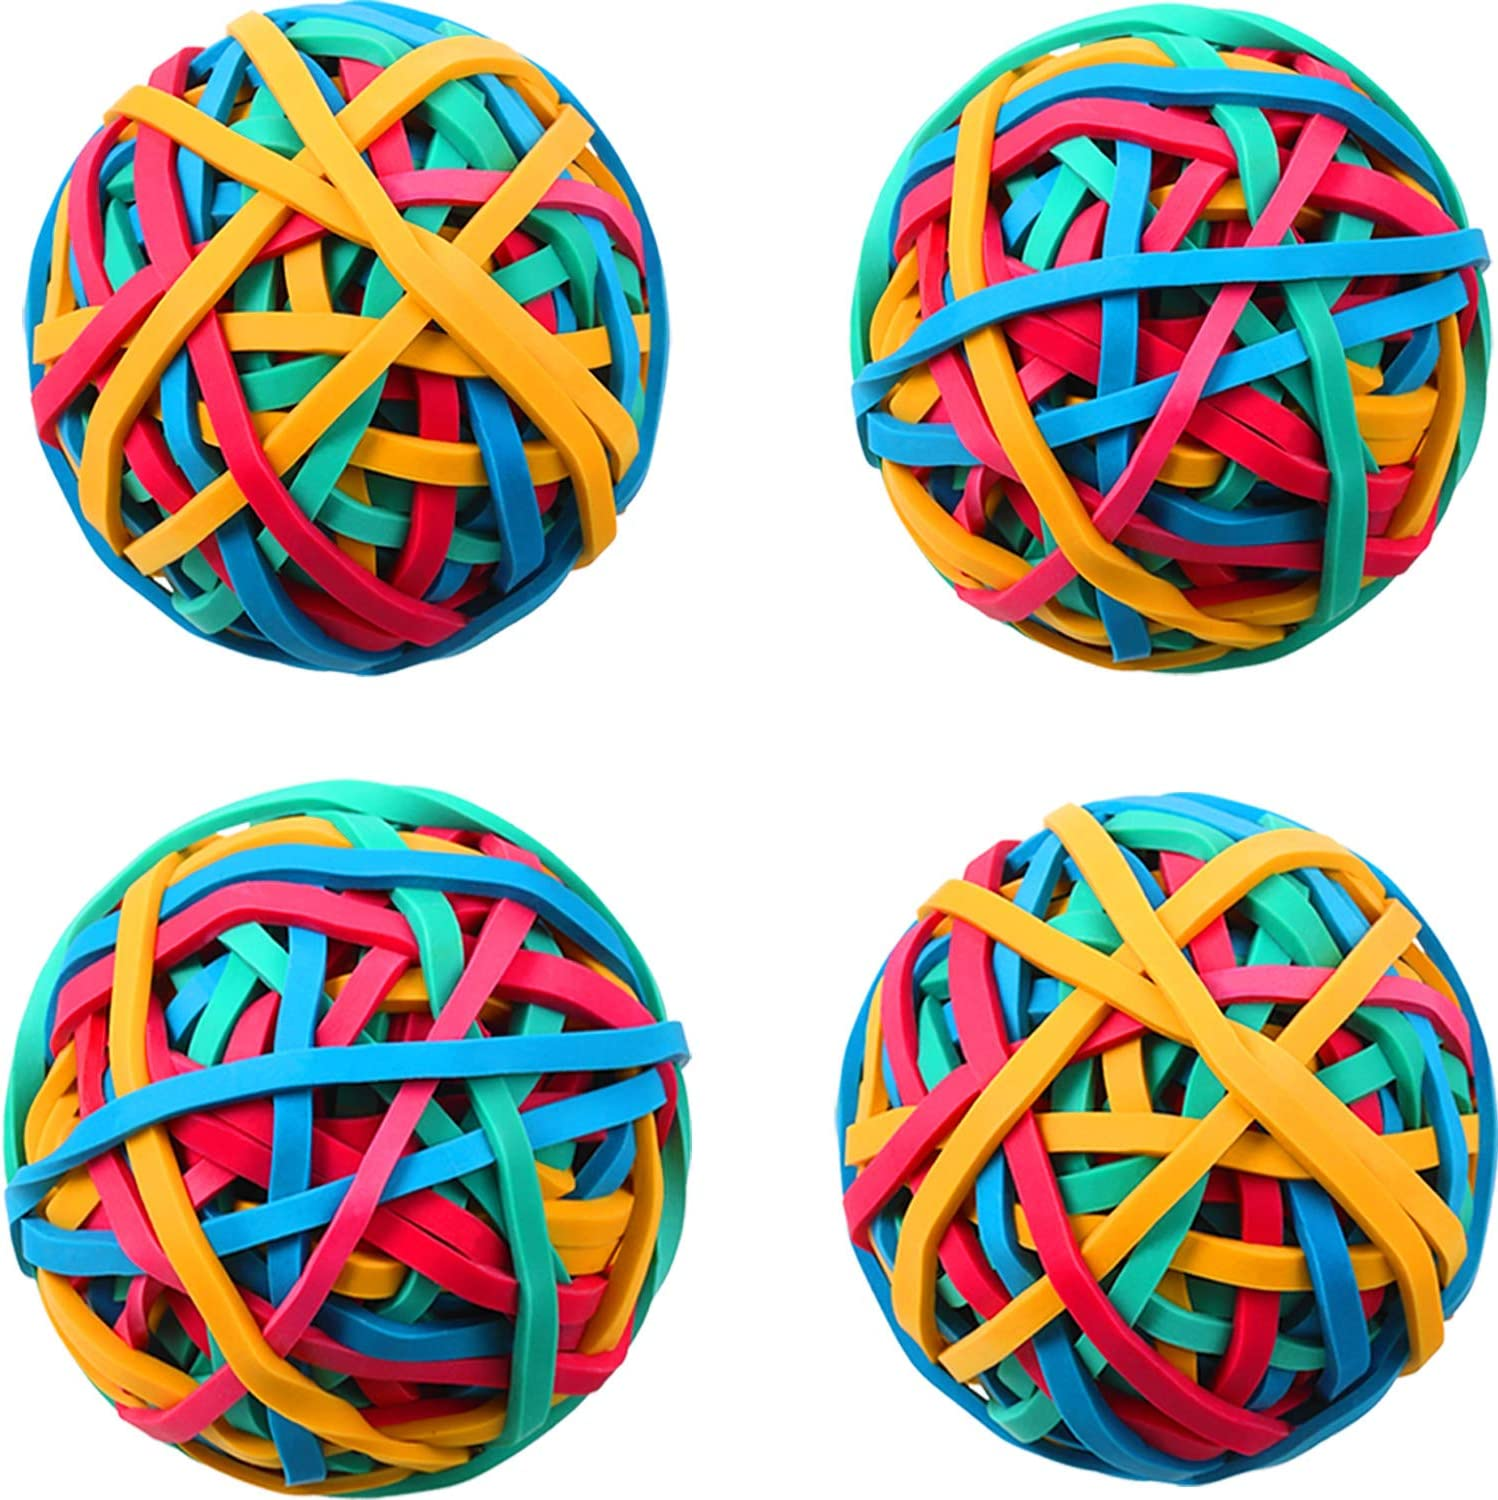 Document Organizing 4 Roll Rubber Band Balls About 400 Pieces Colorful Rubber Bands Stretchable Rubber Bands Stationery Holder Elastic Band Loops for DIY Arts and Crafts